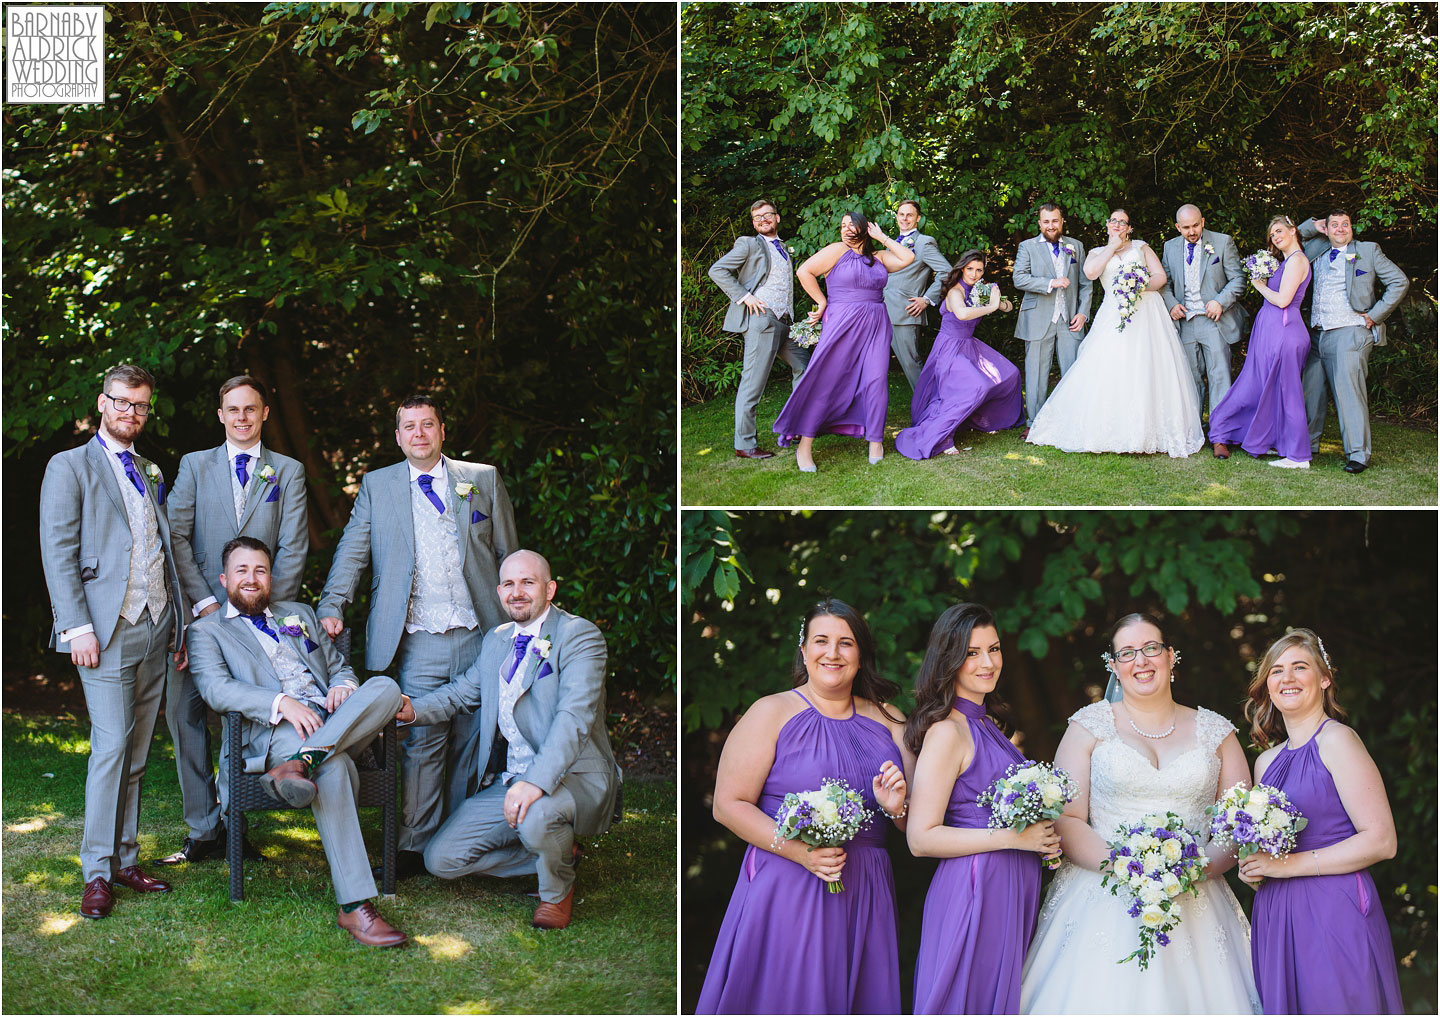 Photos at Craiglands hotel wedding venue Ilkley